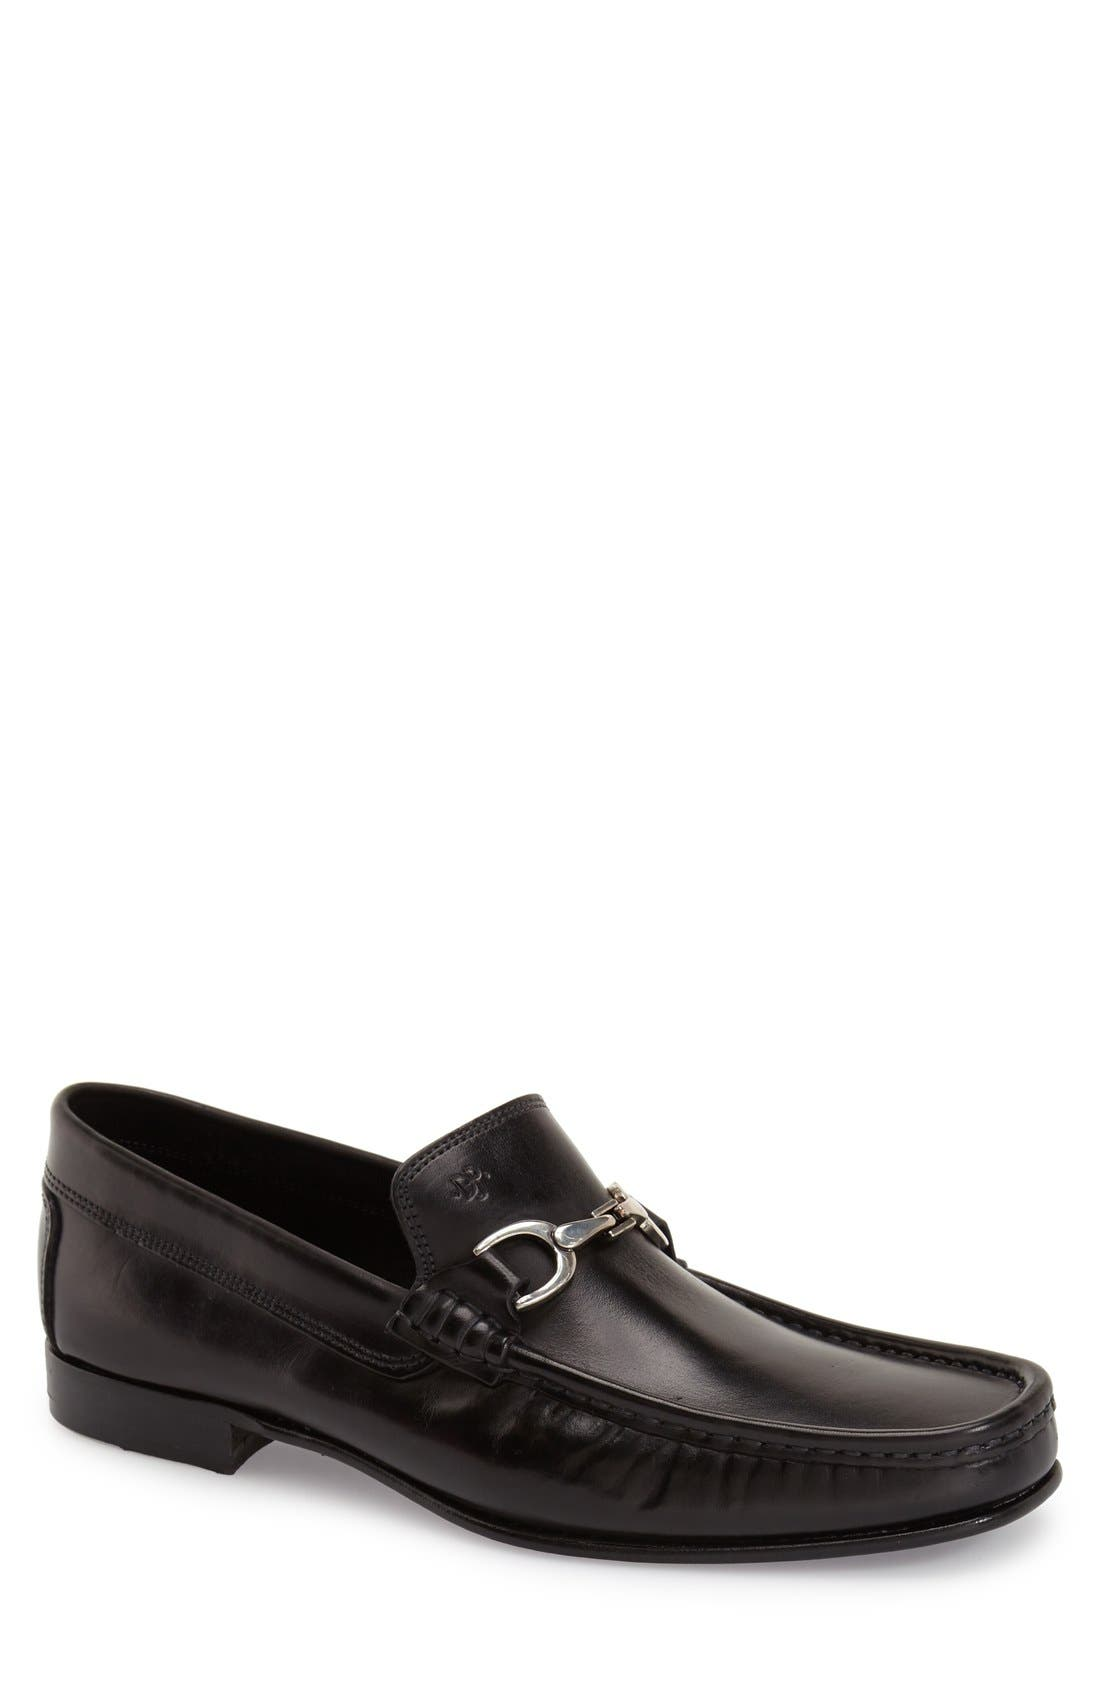 Donald Pliner Darrin Bit Loafer- Black